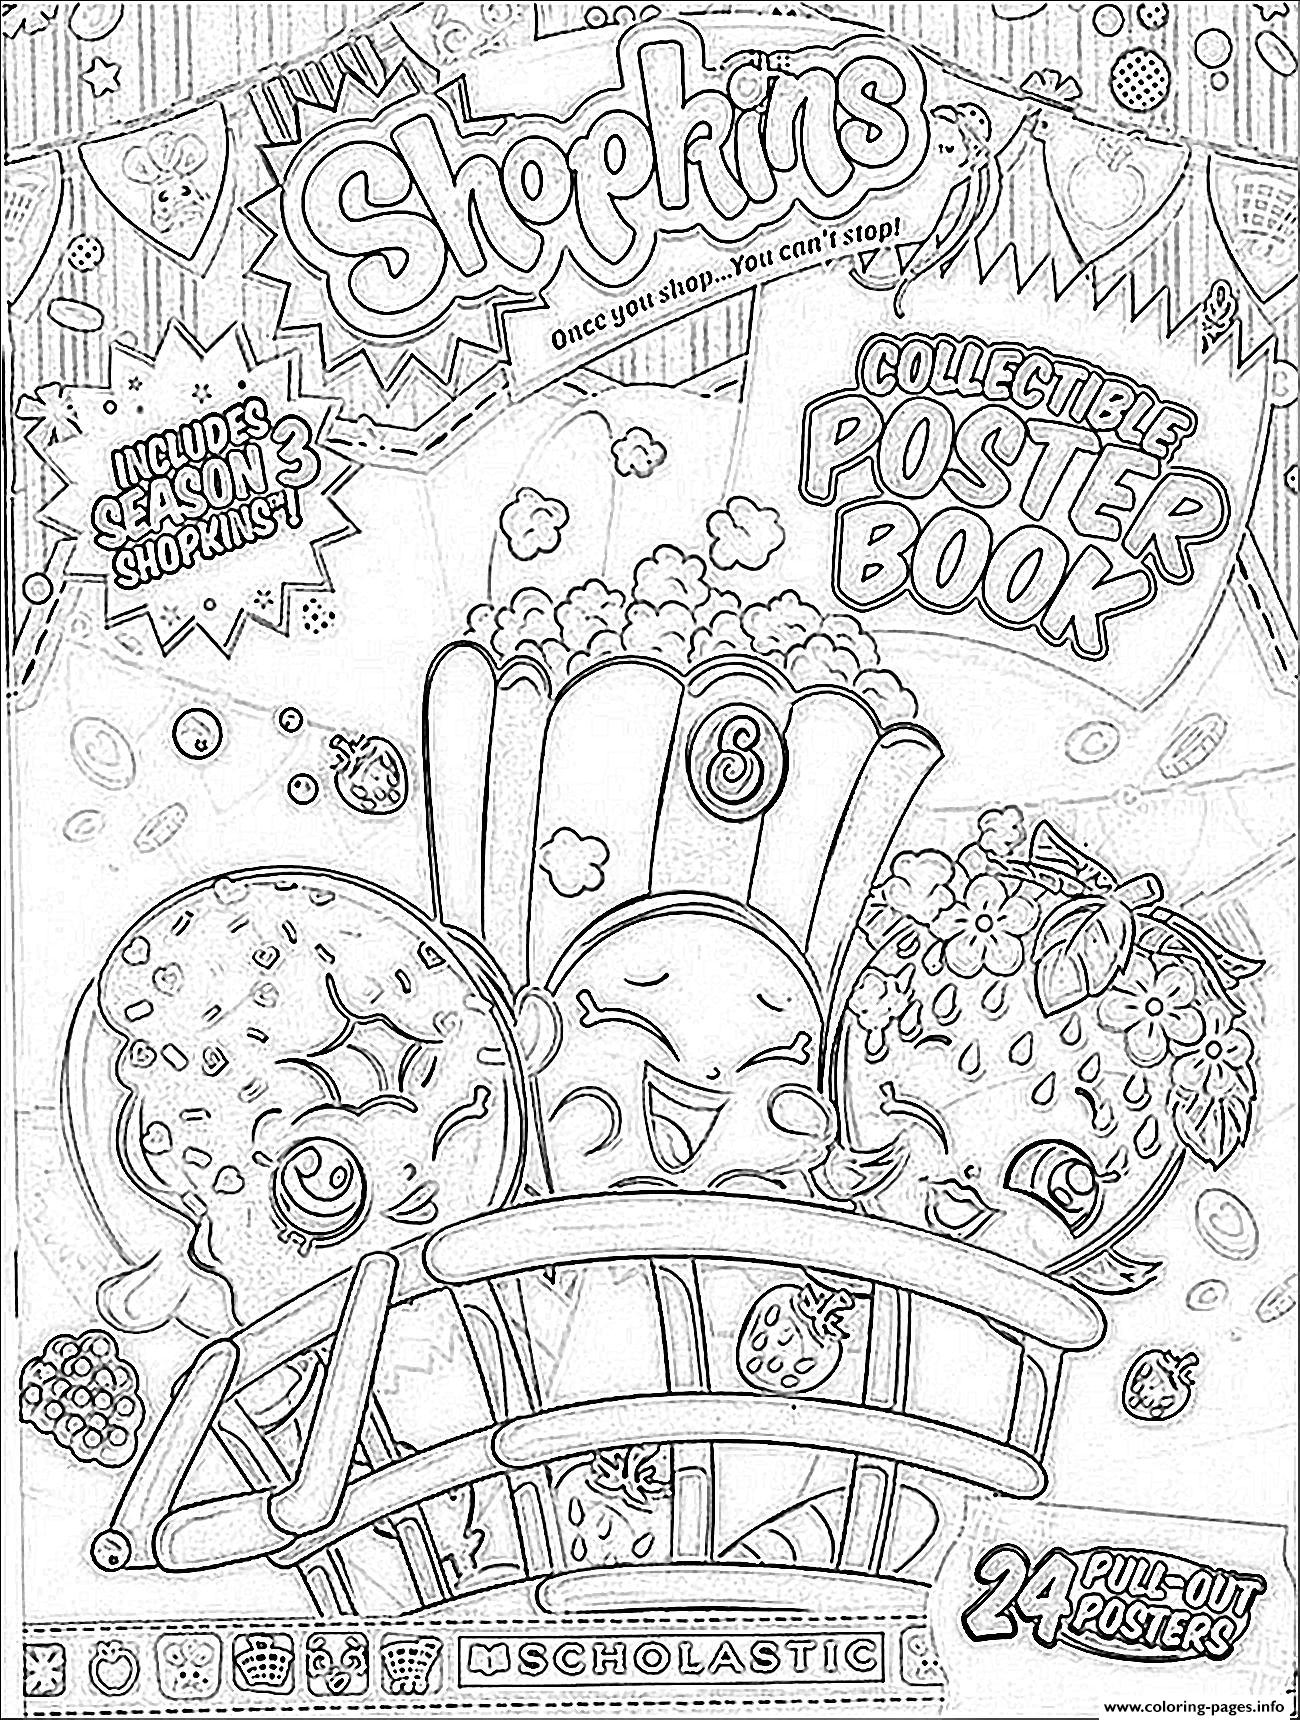 Shopkins coloring pages season 3 - Shopkins Coloring Pages Season 3 17